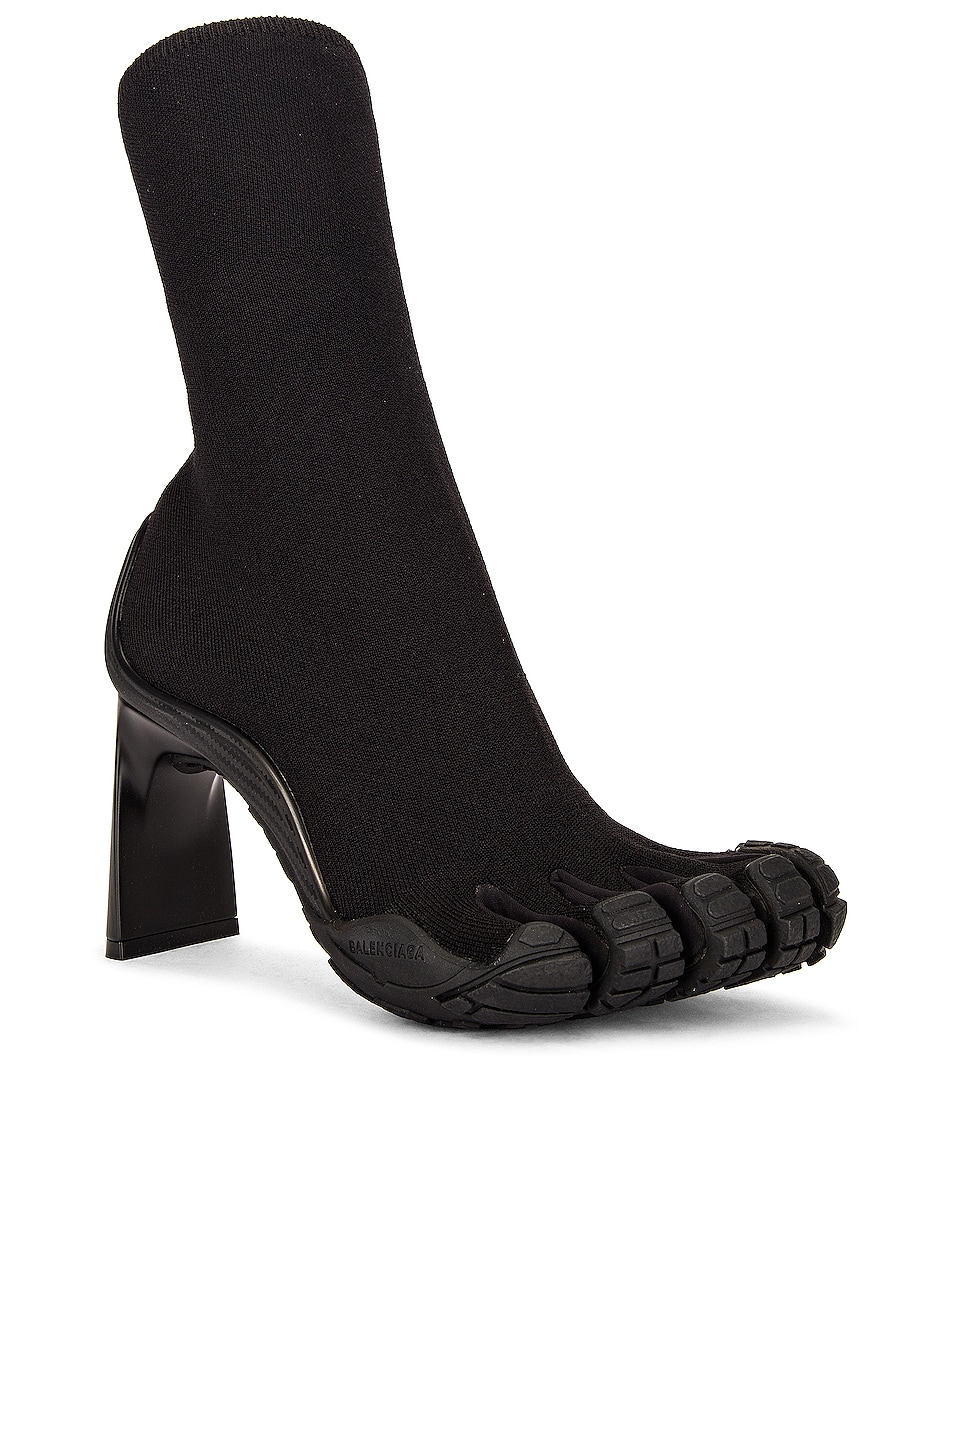 Image 1 of Balenciaga x Vibram Five Fingers High Toe Ankle Boots in Black